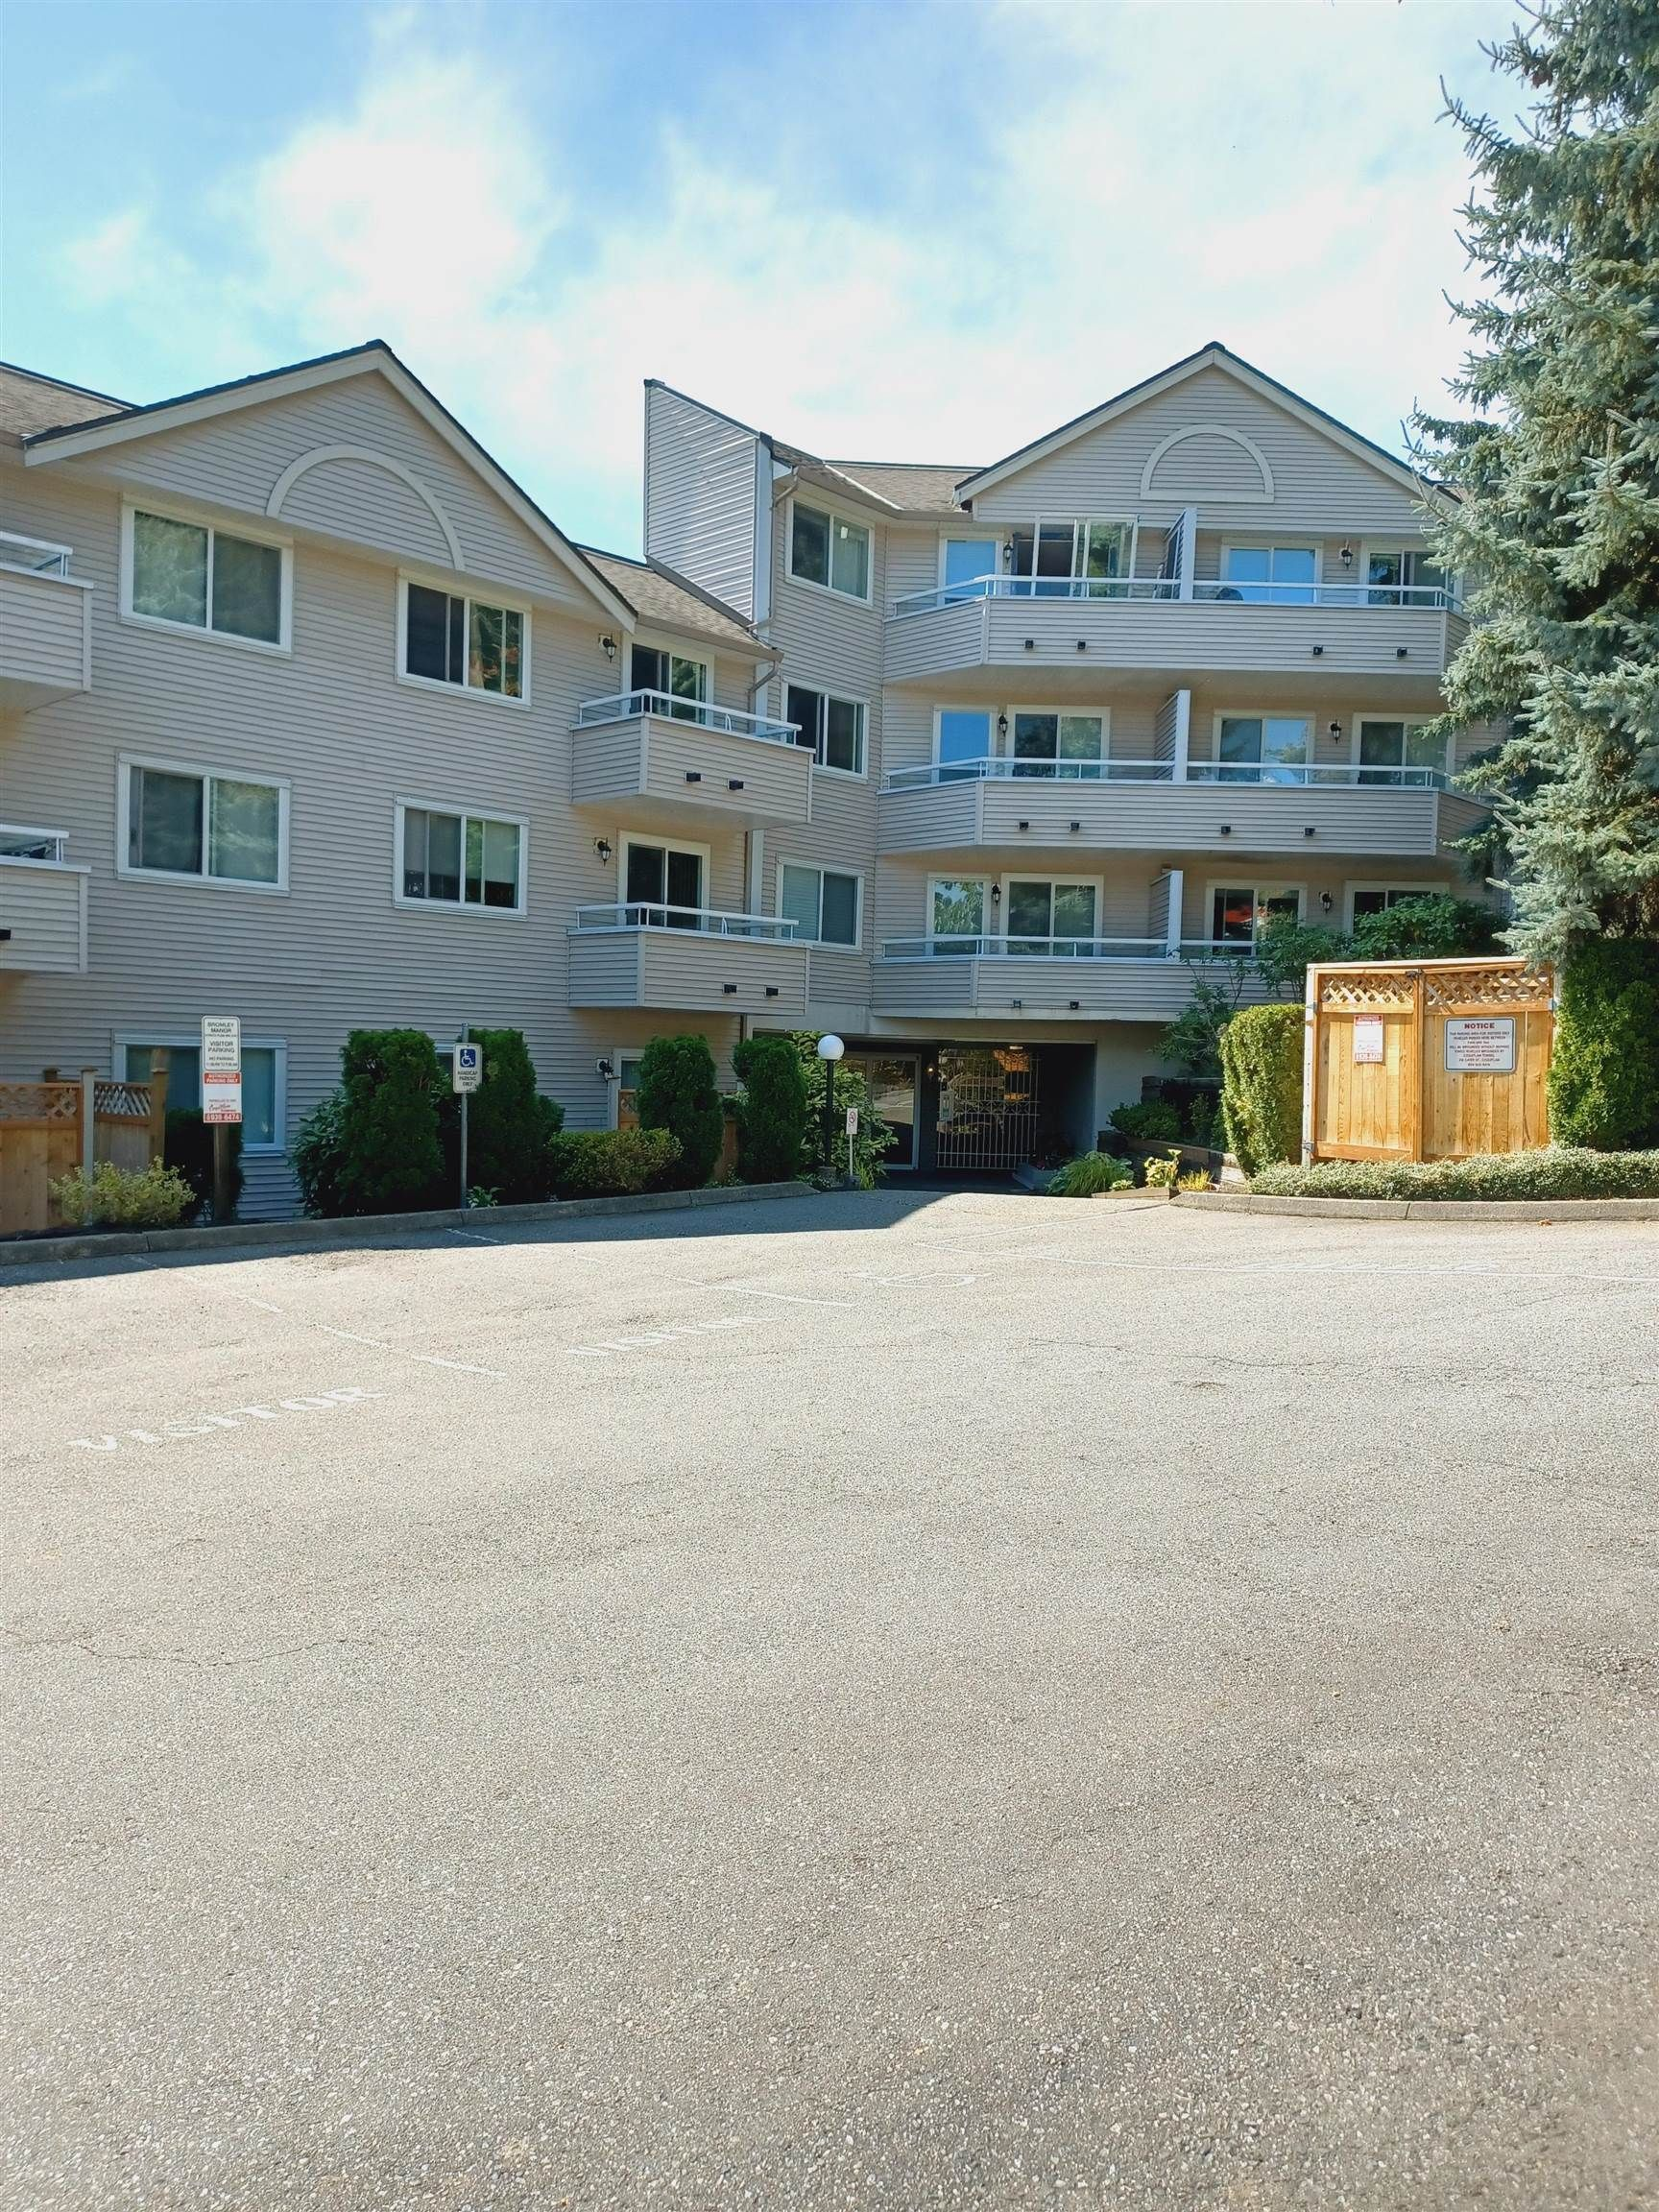 """Main Photo: 307 450 BROMLEY Street in Coquitlam: Coquitlam East Condo for sale in """"BROMLEY MANOR"""" : MLS®# R2612328"""